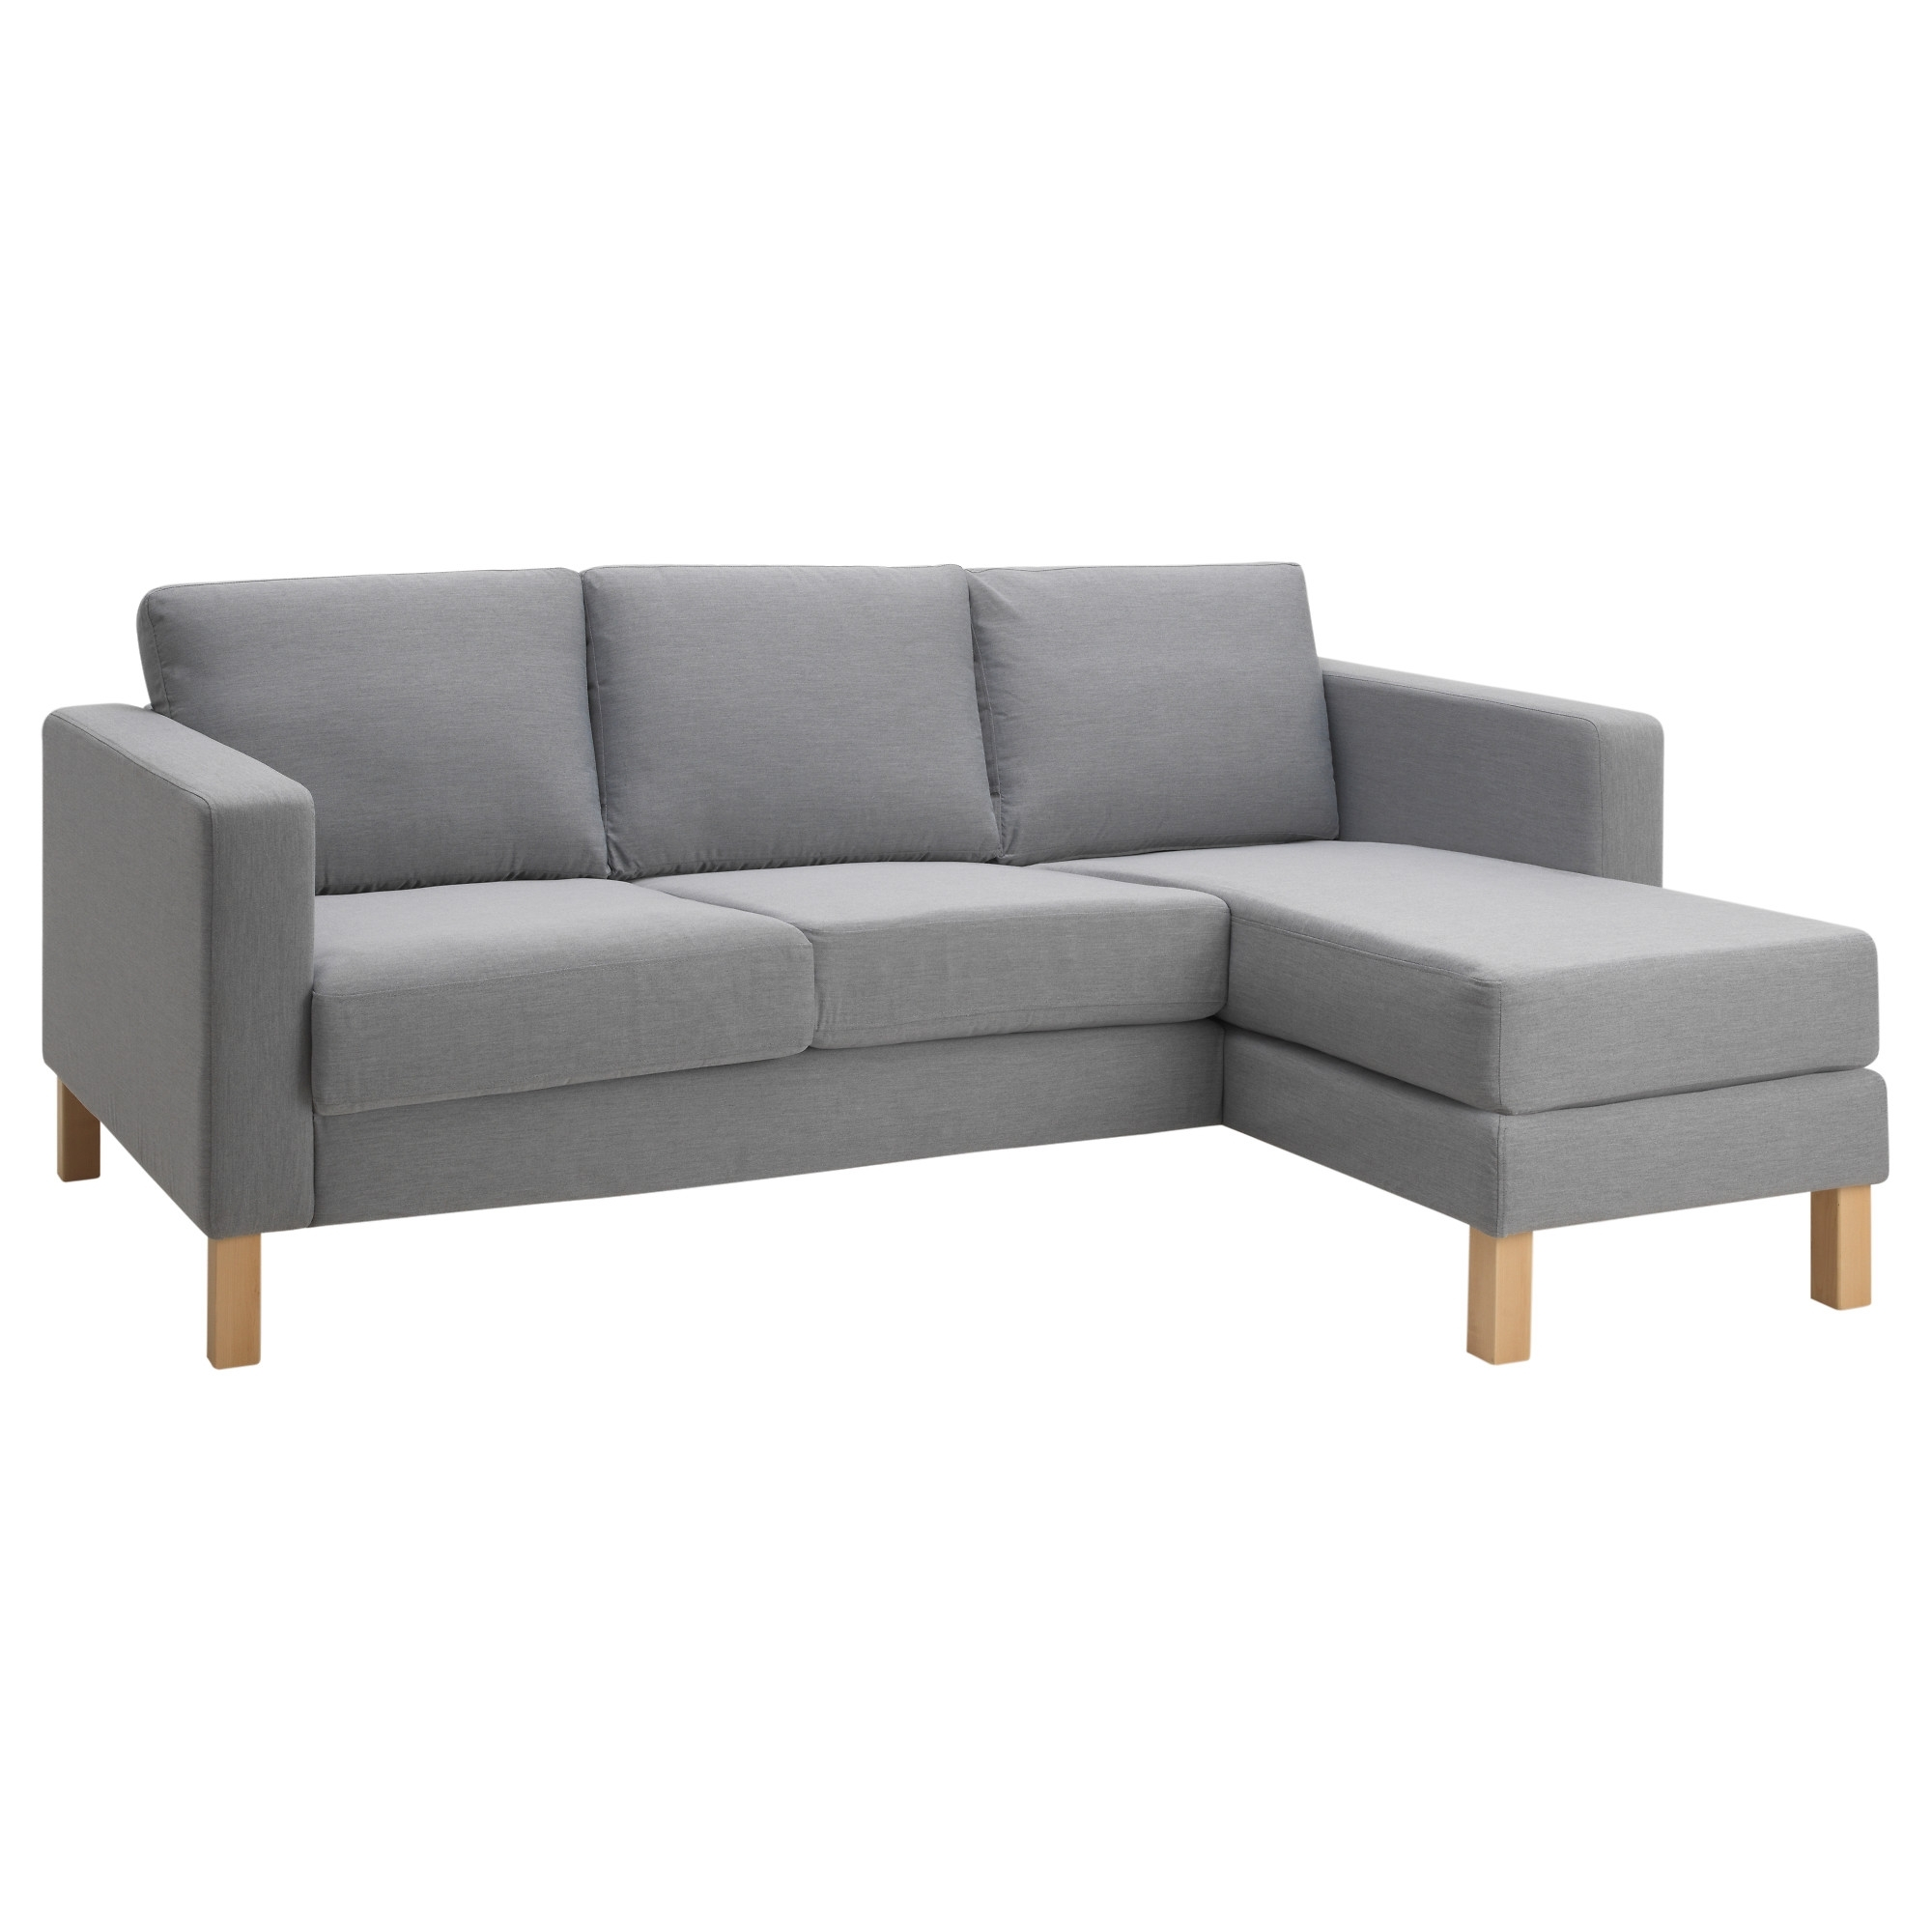 Preferred Karlstad Chaises In Karlstad Compact 2 Seat Sofa W Chaise Lounge – Isunda Grey – Ikea (View 15 of 15)